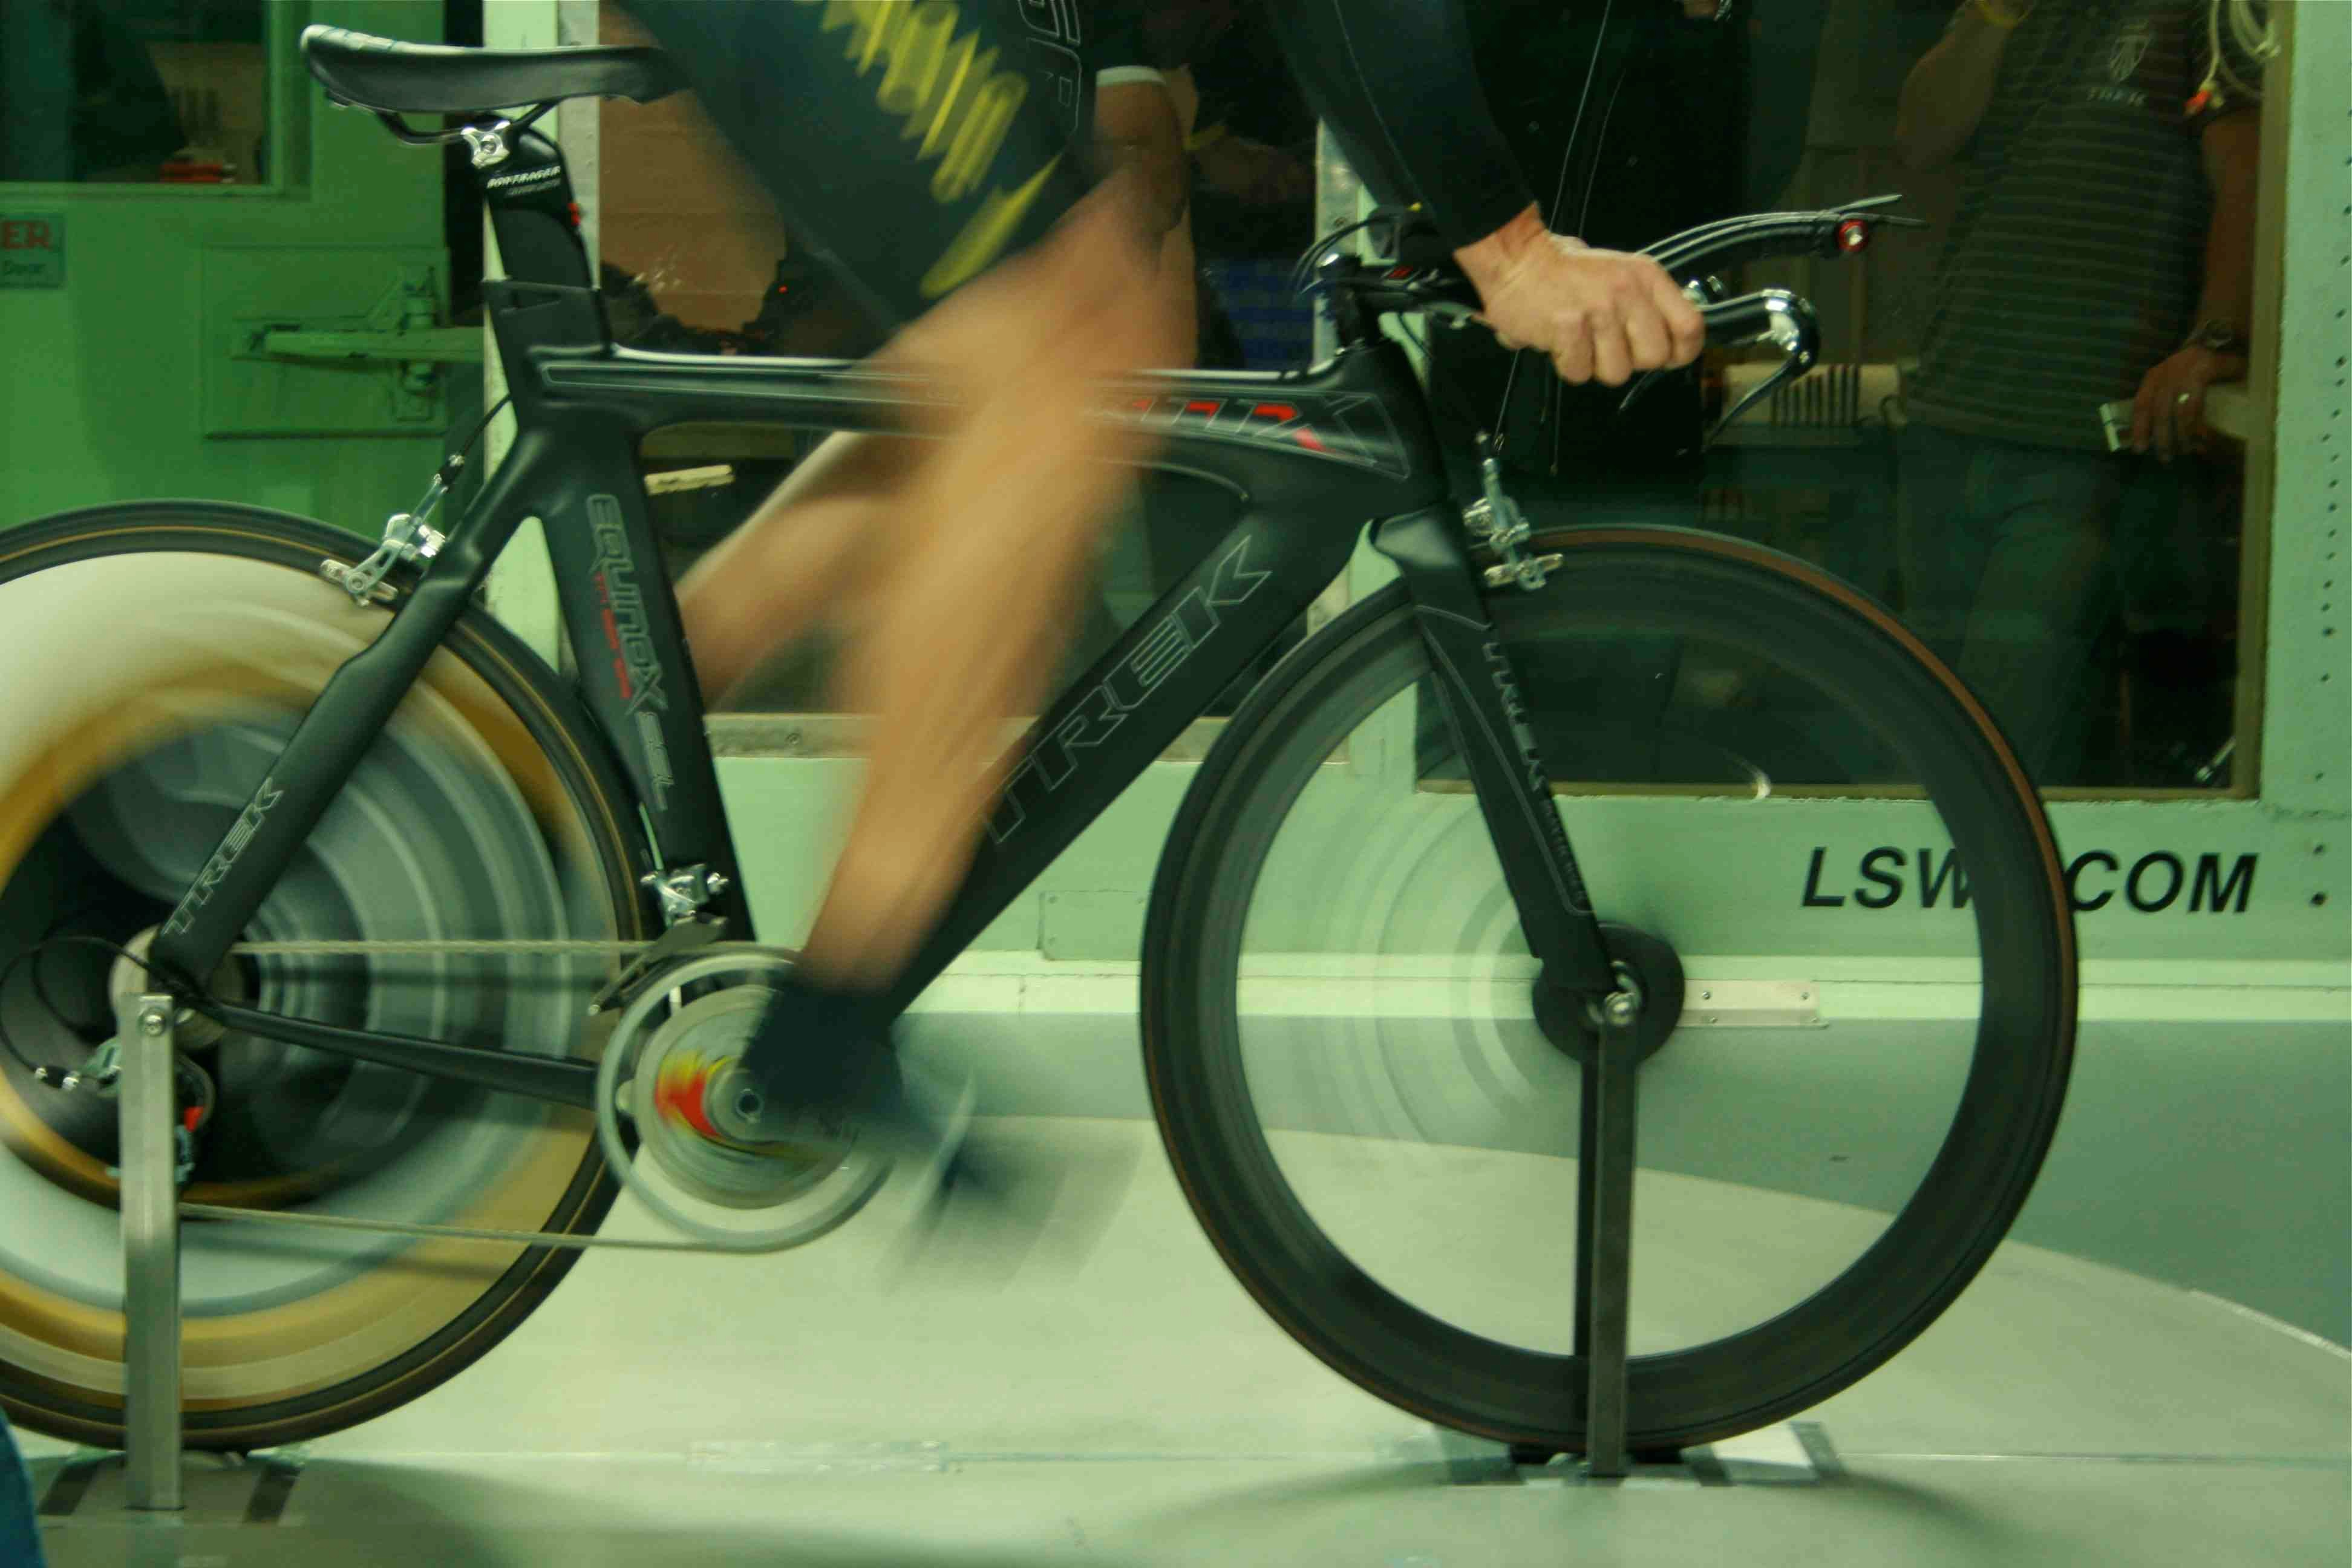 The high RPM blur is back, as Lance Armstrong enters the wind tunnel for the first of many times in his 2009 return to the pro peloton.